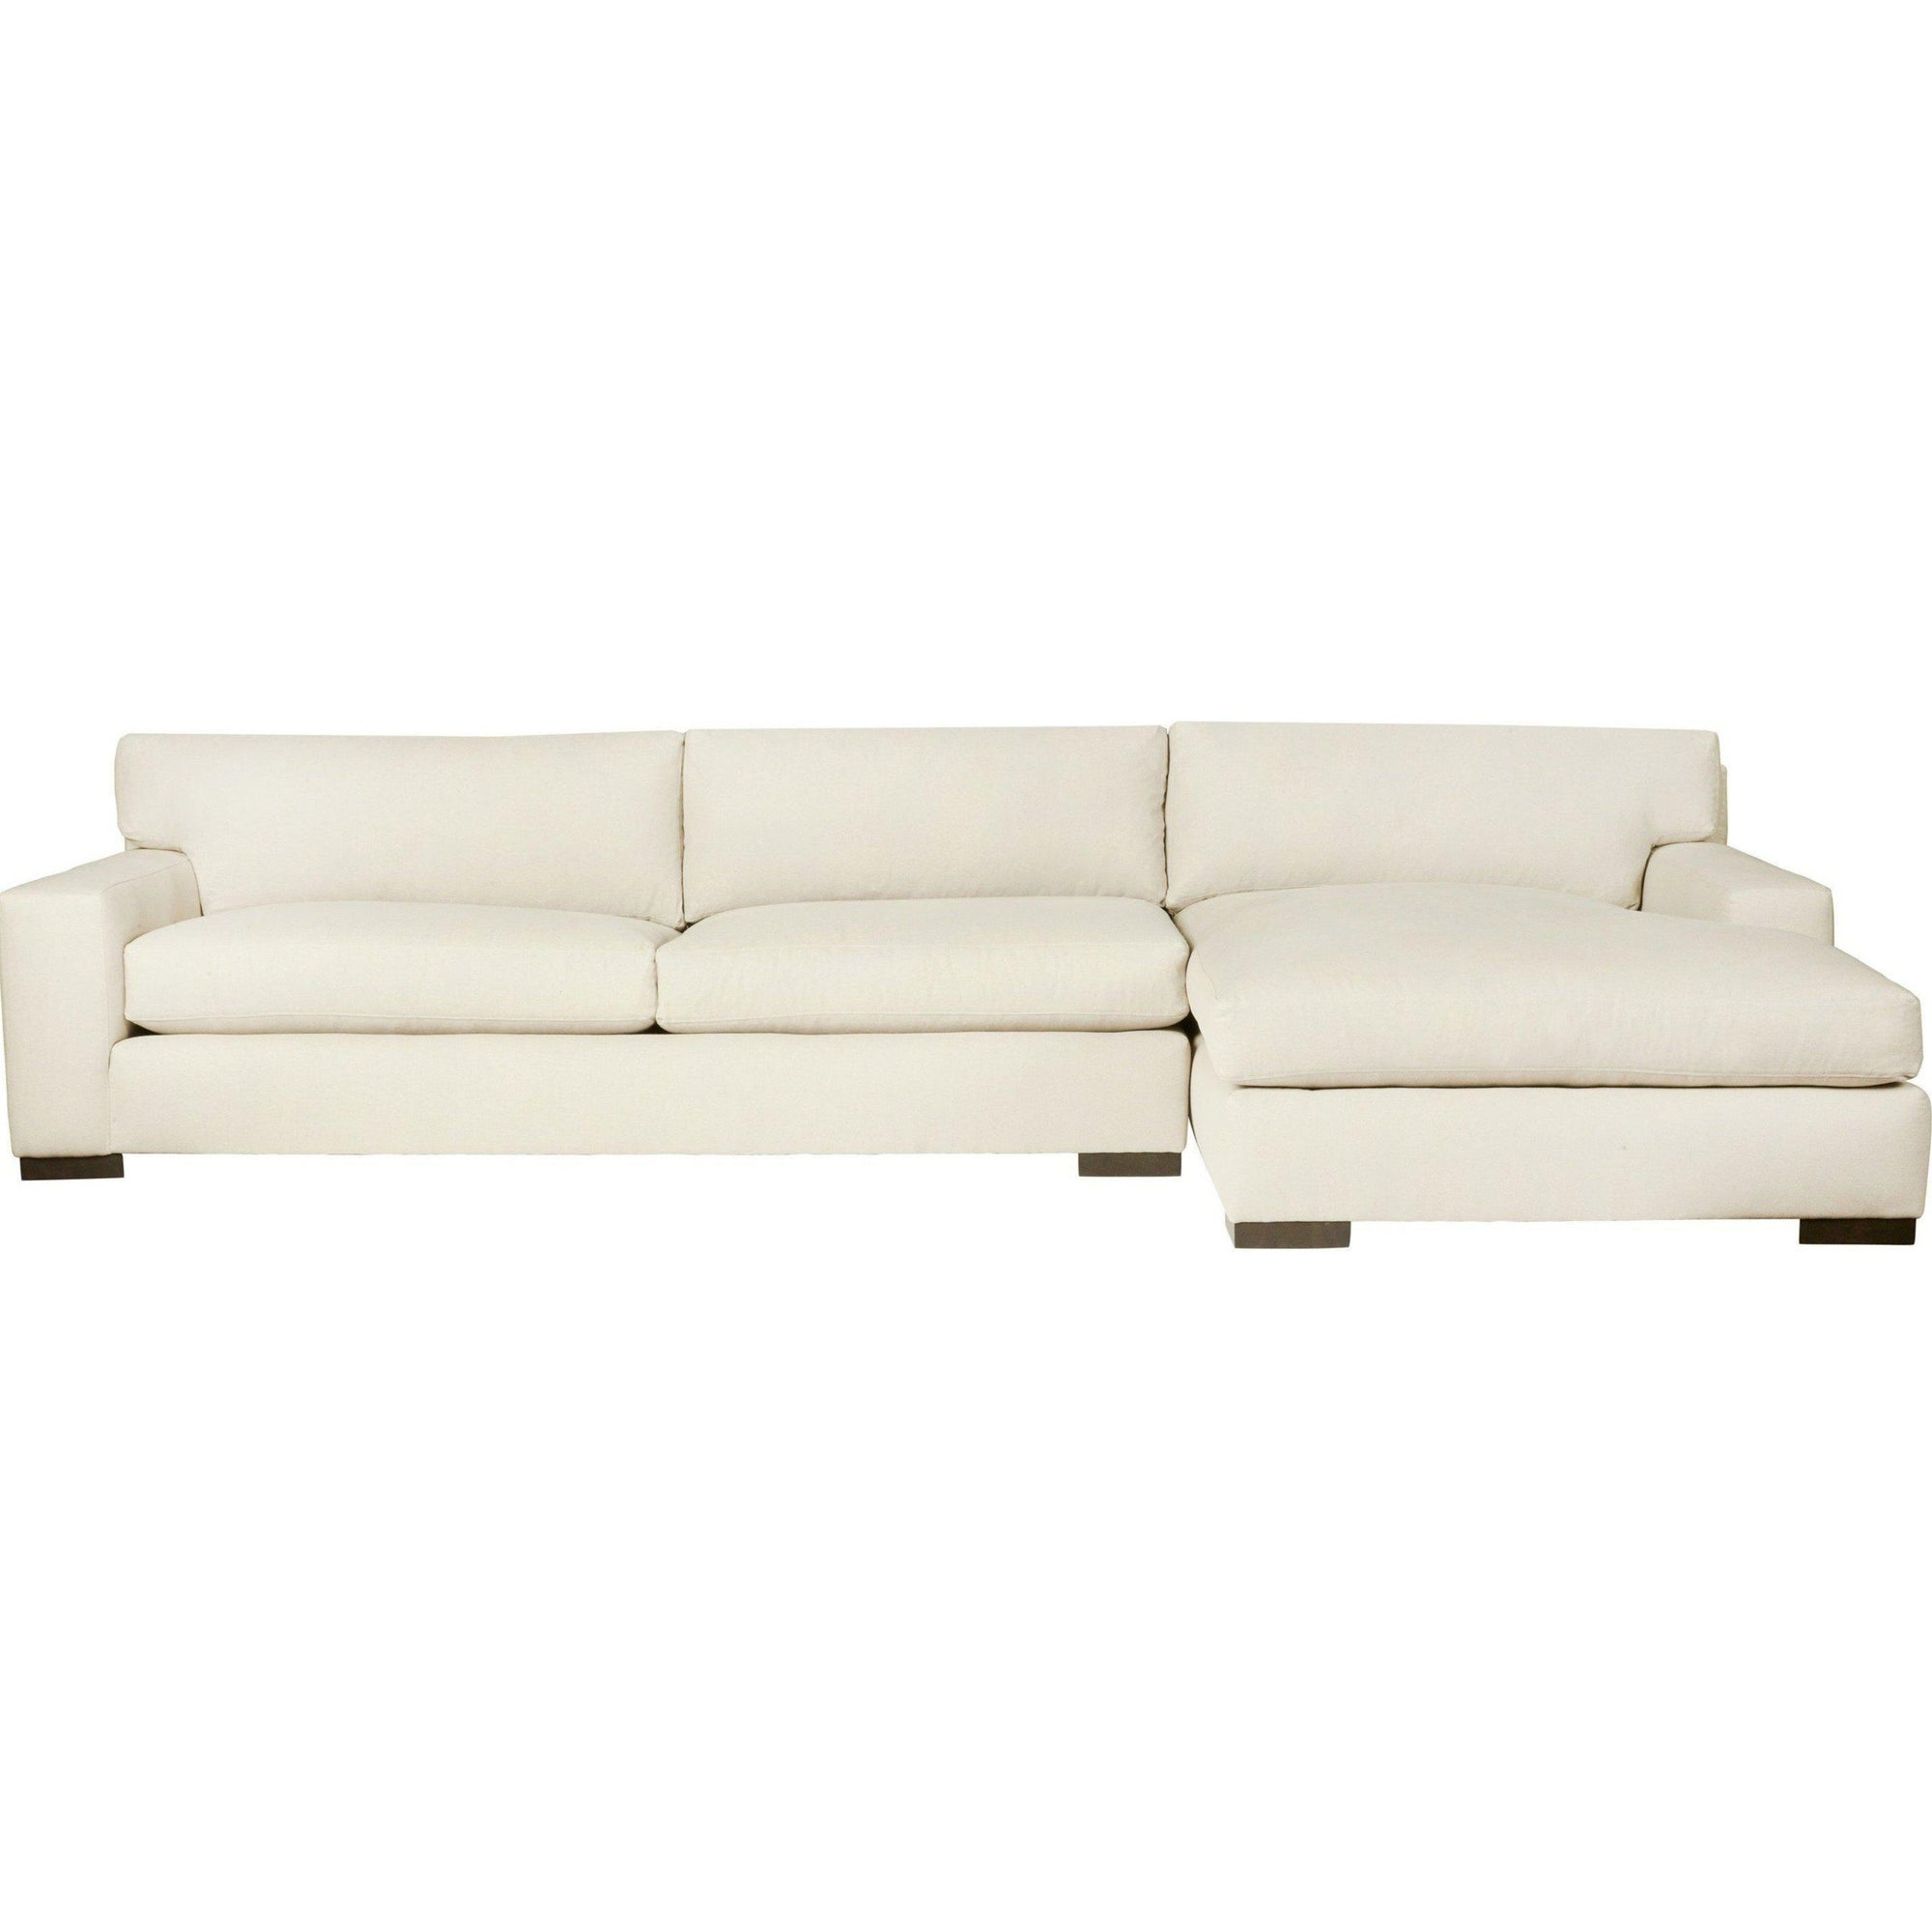 Cisco Brothers Loft 2 Piece Sectional Essentials Collection